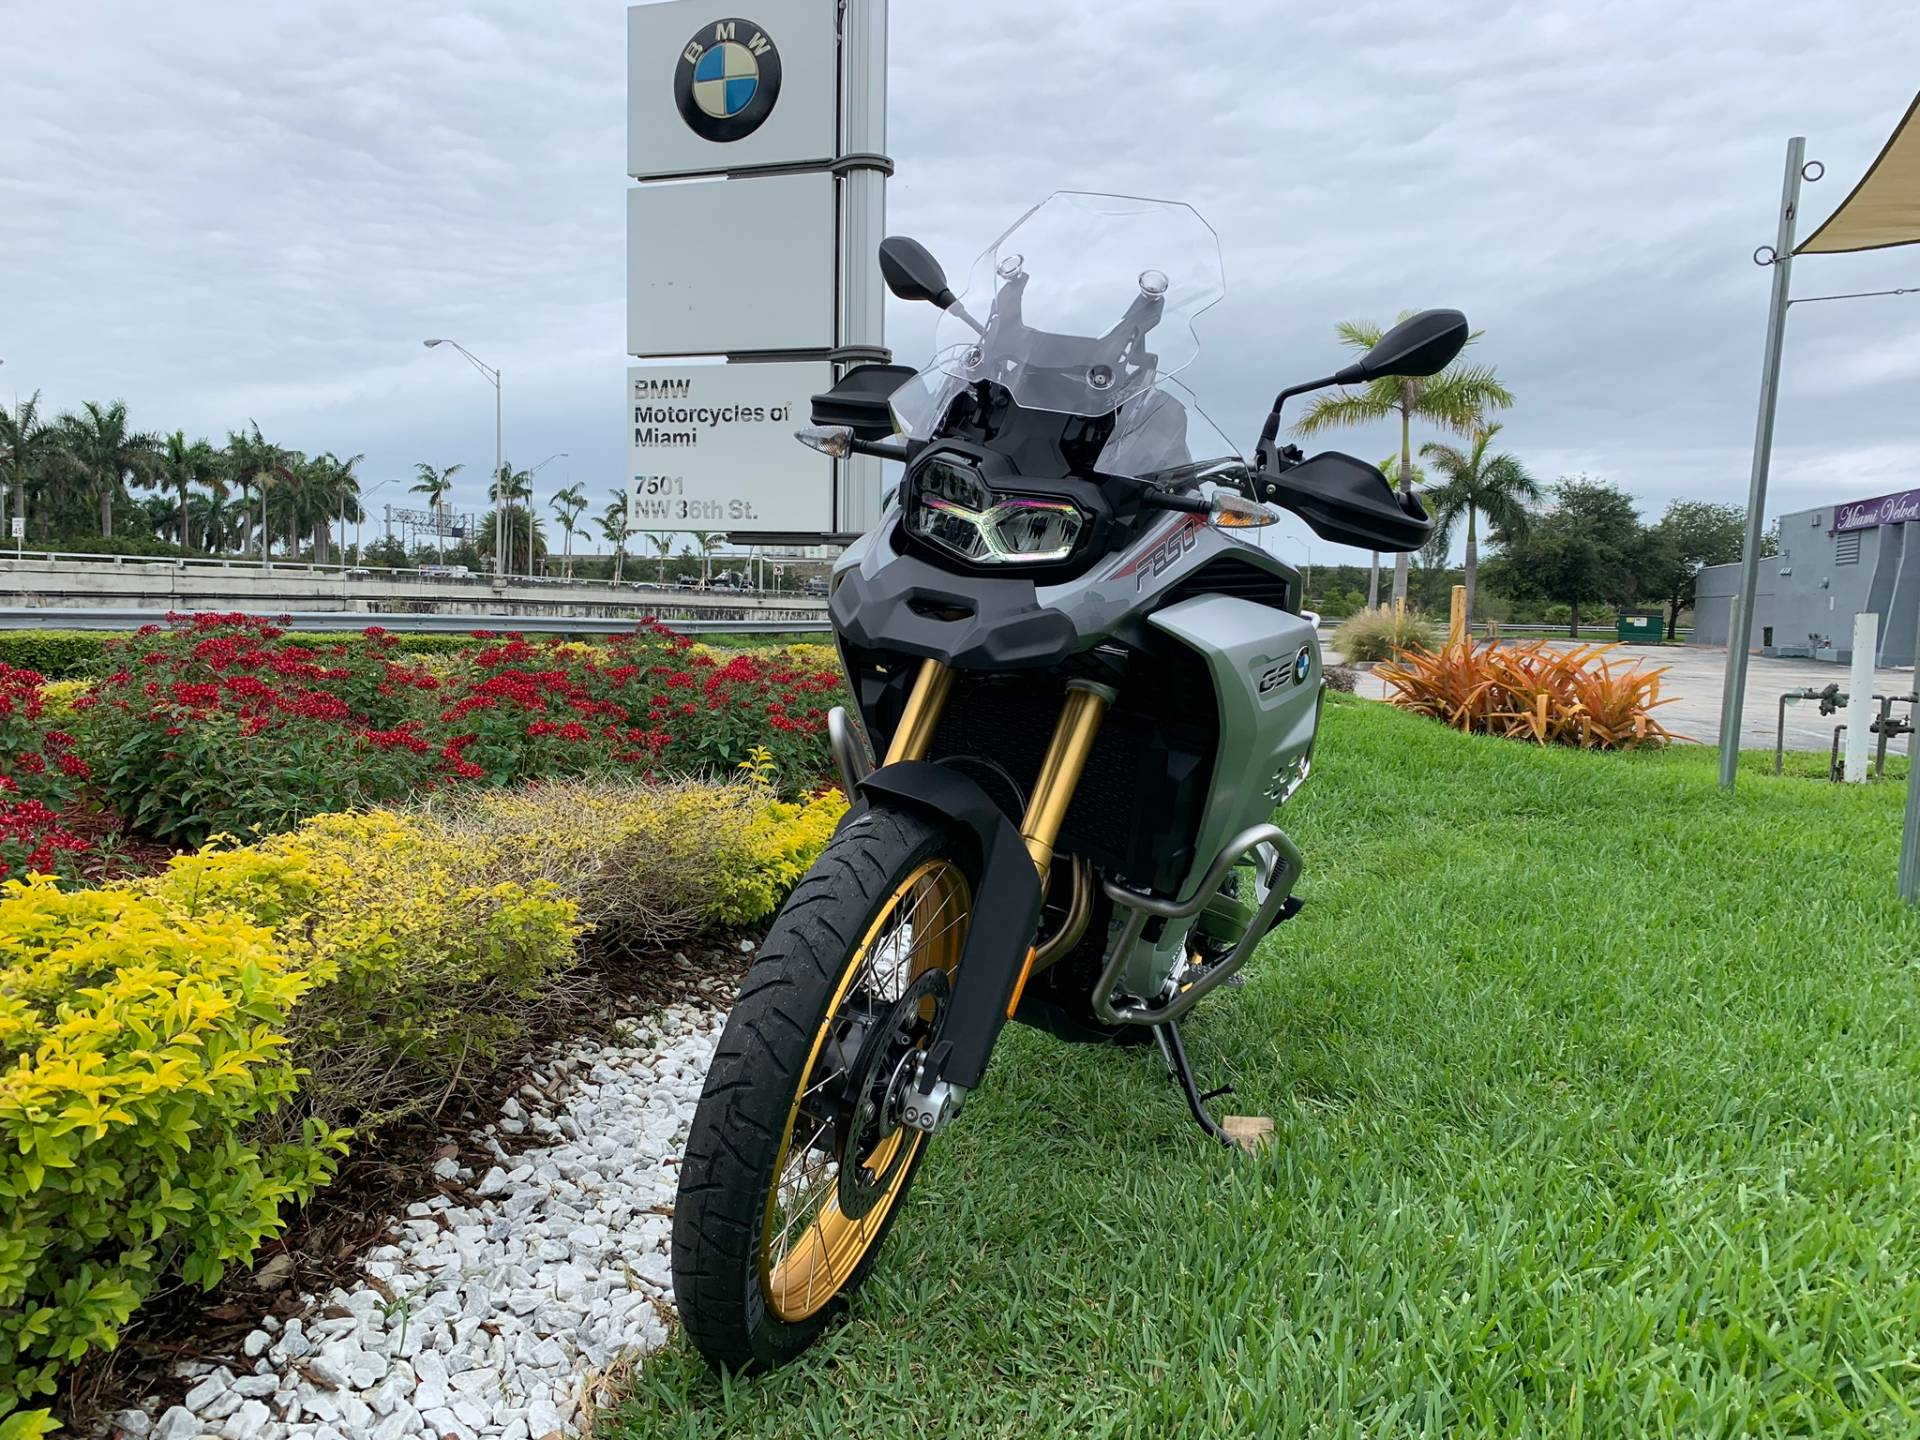 New 2019 BMW F 850 GSA for sale, BMW F 850GSA for sale, BMW Motorcycle F850GSA, new BMW 850 Adventure, Adventure. BMW Motorcycles of Miami, Motorcycles of Miami, Motorcycles Miami, New Motorcycles, Used Motorcycles, pre-owned. #BMWMotorcyclesOfMiami #MotorcyclesOfMiami #MotorcyclesMiami - Photo 4